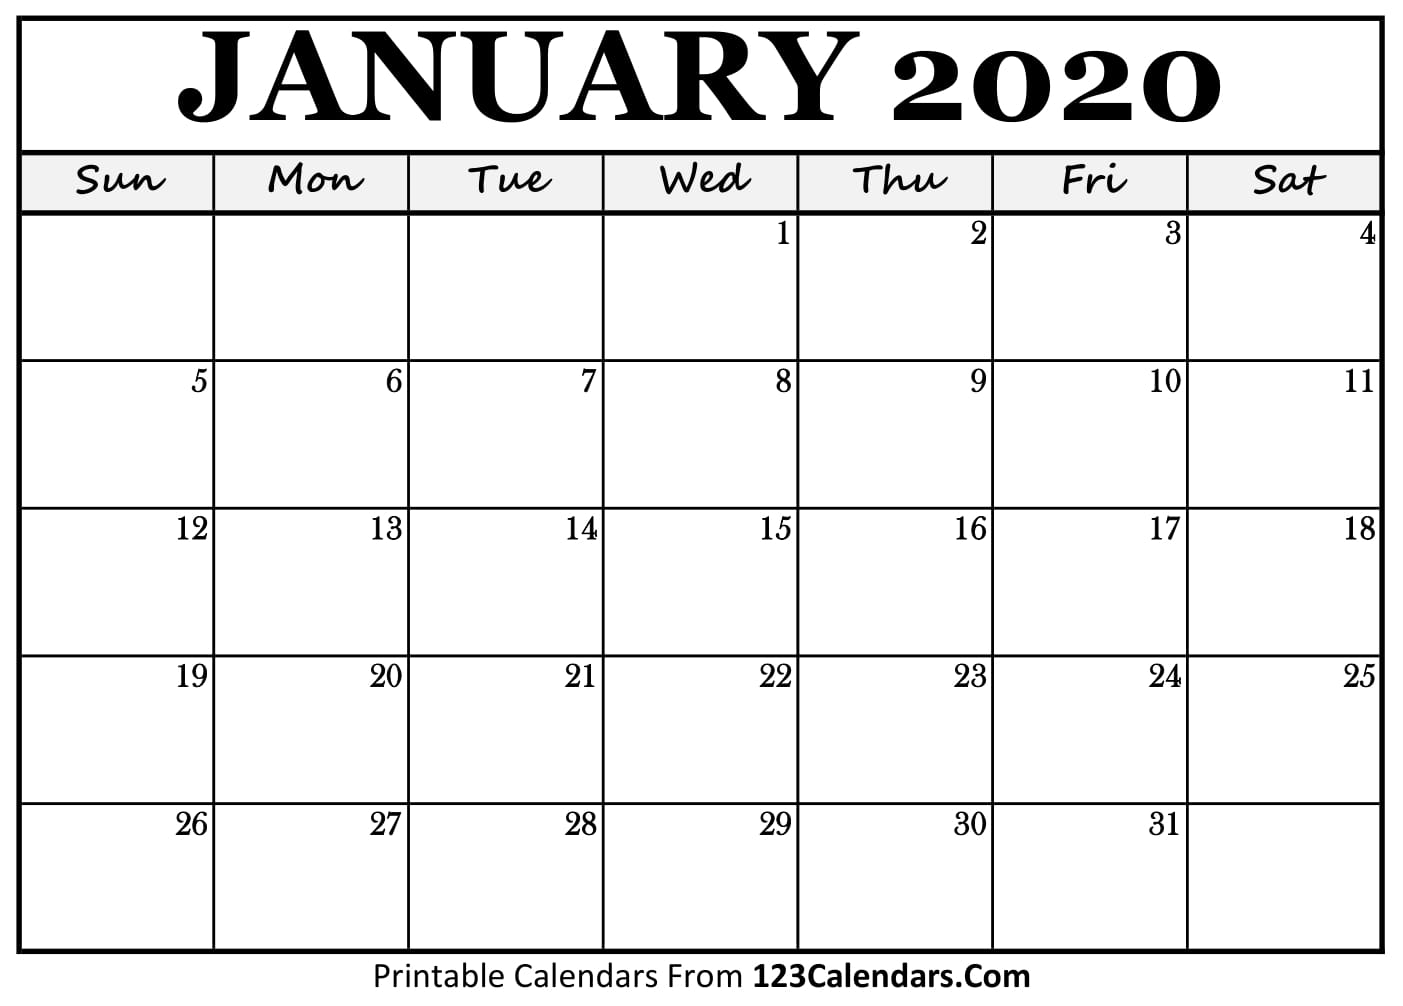 image regarding January Calendar Printable identify January 2020 Printable Calendar